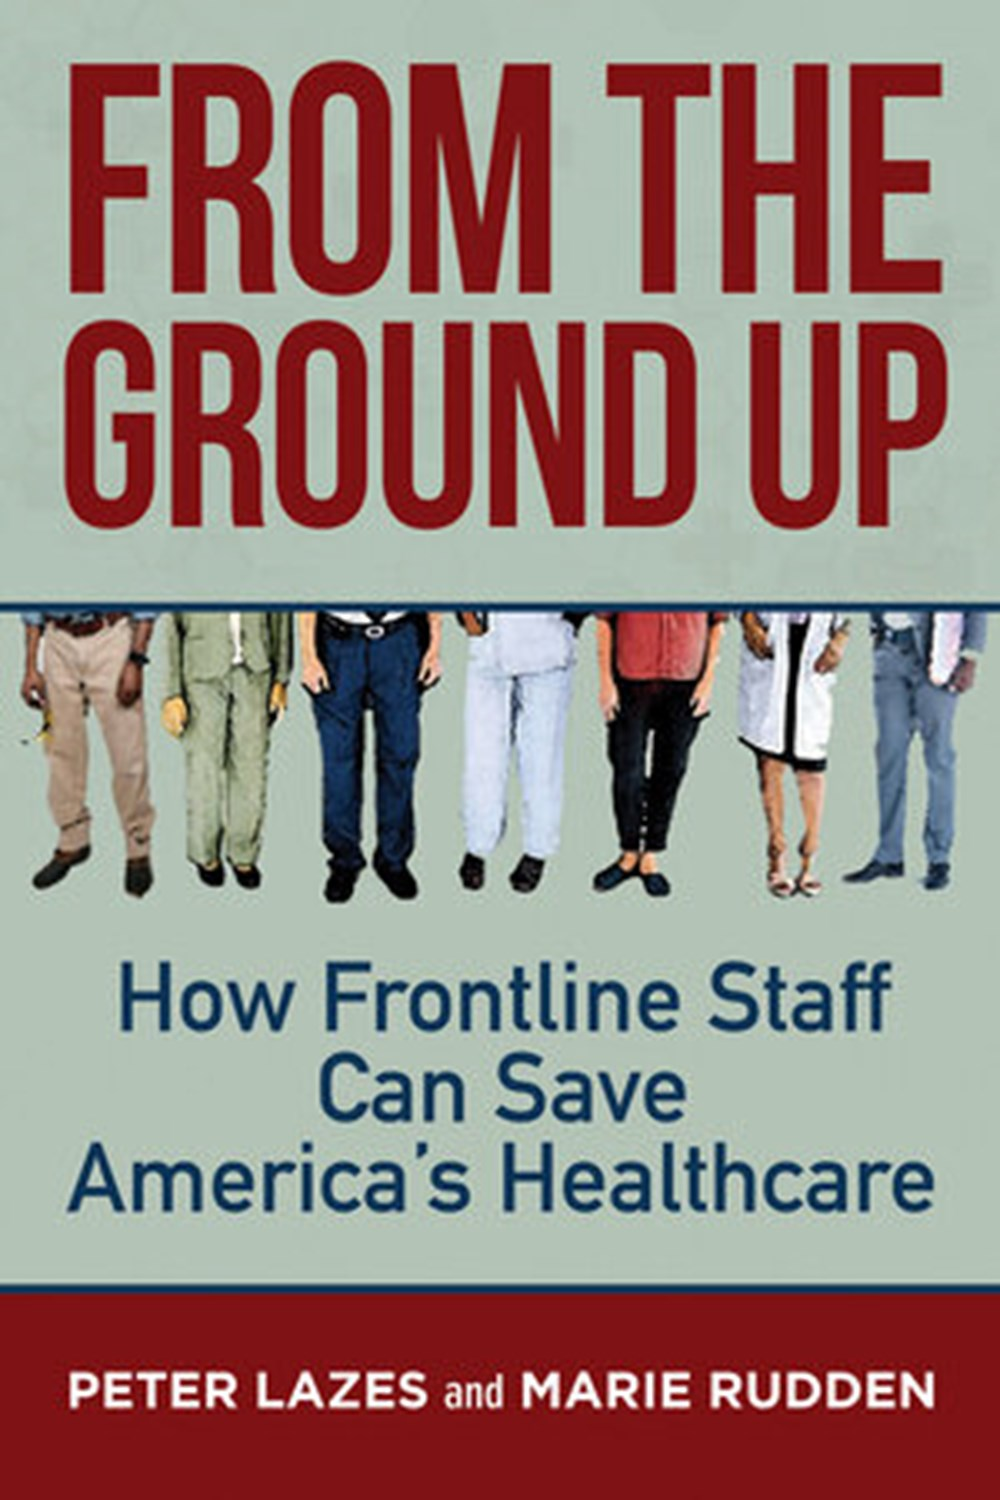 From the Ground Up How Frontline Staff Can Save Americas Healthcare